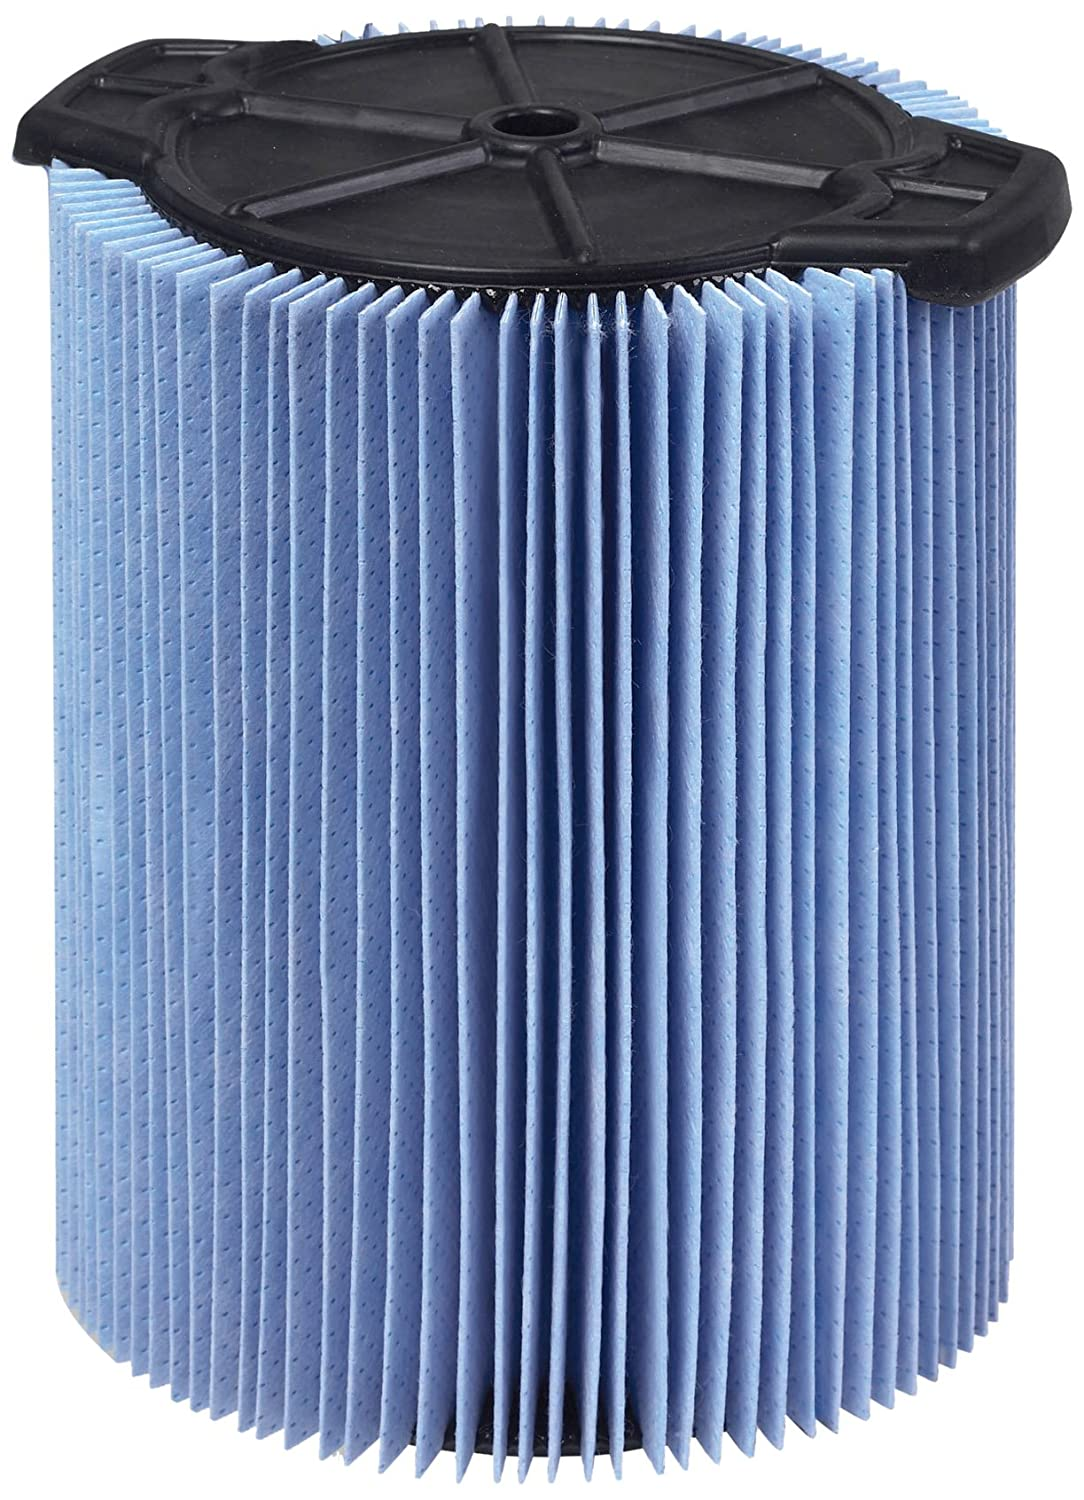 WORKSHOP Wet Dry Vac Filters WS12045F2 Fine Dust Wet Dry Vacuum Filters (2-Pack - Shop Vacuum Filters) For WORKSHOP 3-Gallon To 4-1/2-Gallon Shop Vacuum Cleaners Emerson Tool Company